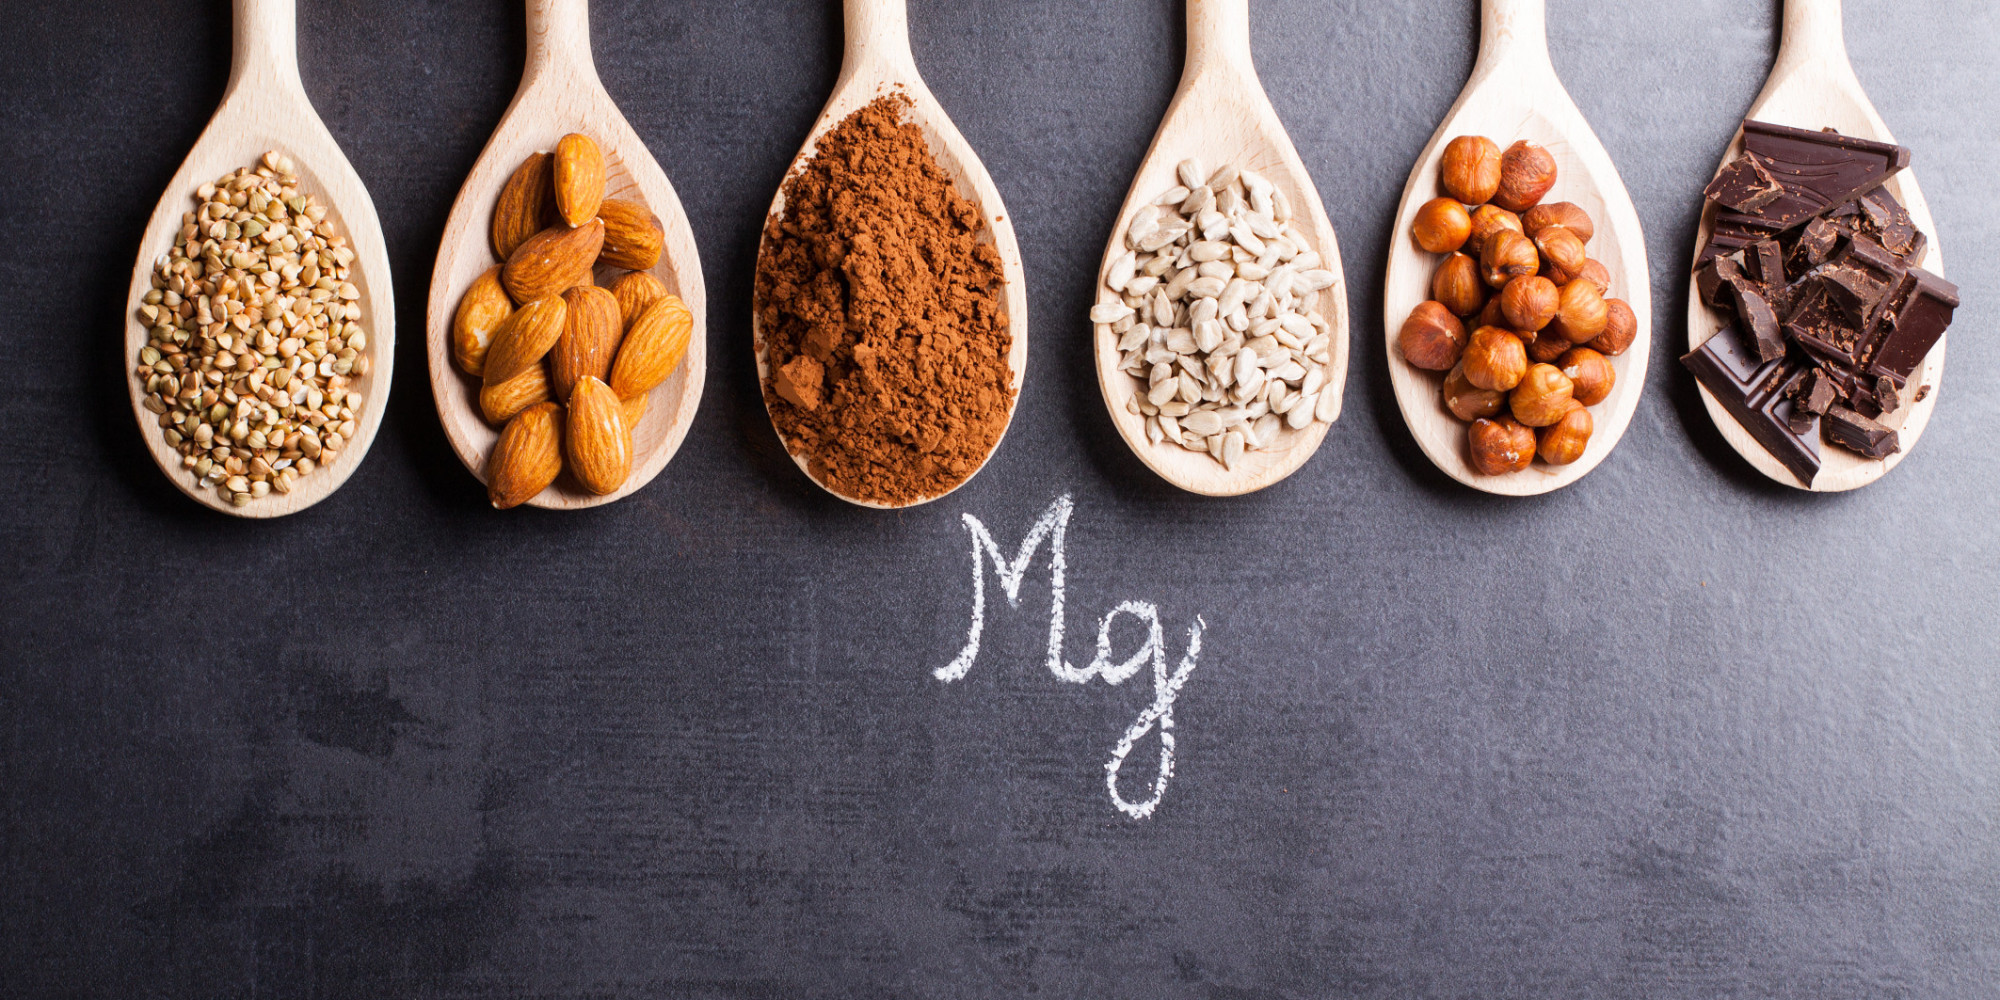 What's the Deal with Magnesium?